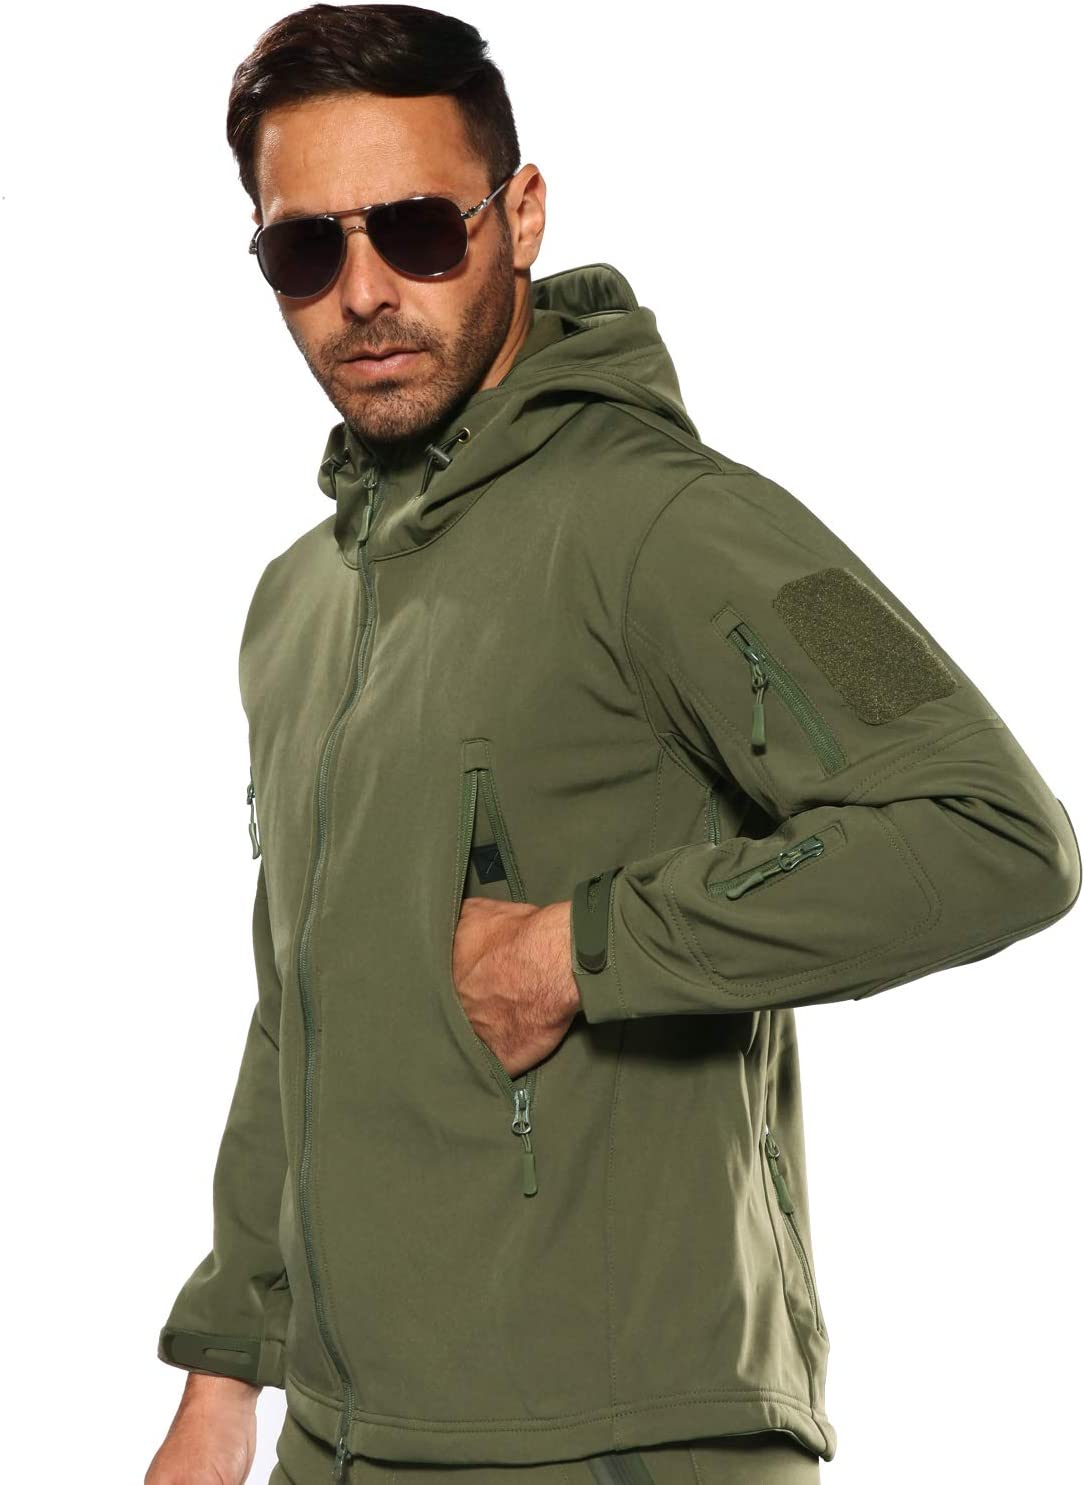 YEVHEV Mens Outdoor Waterproof Tactical Jacket Long Sleeve with Hood and 6 Pockets Military Fleece Jackets Tactical Military Coat for Outdoor Activities